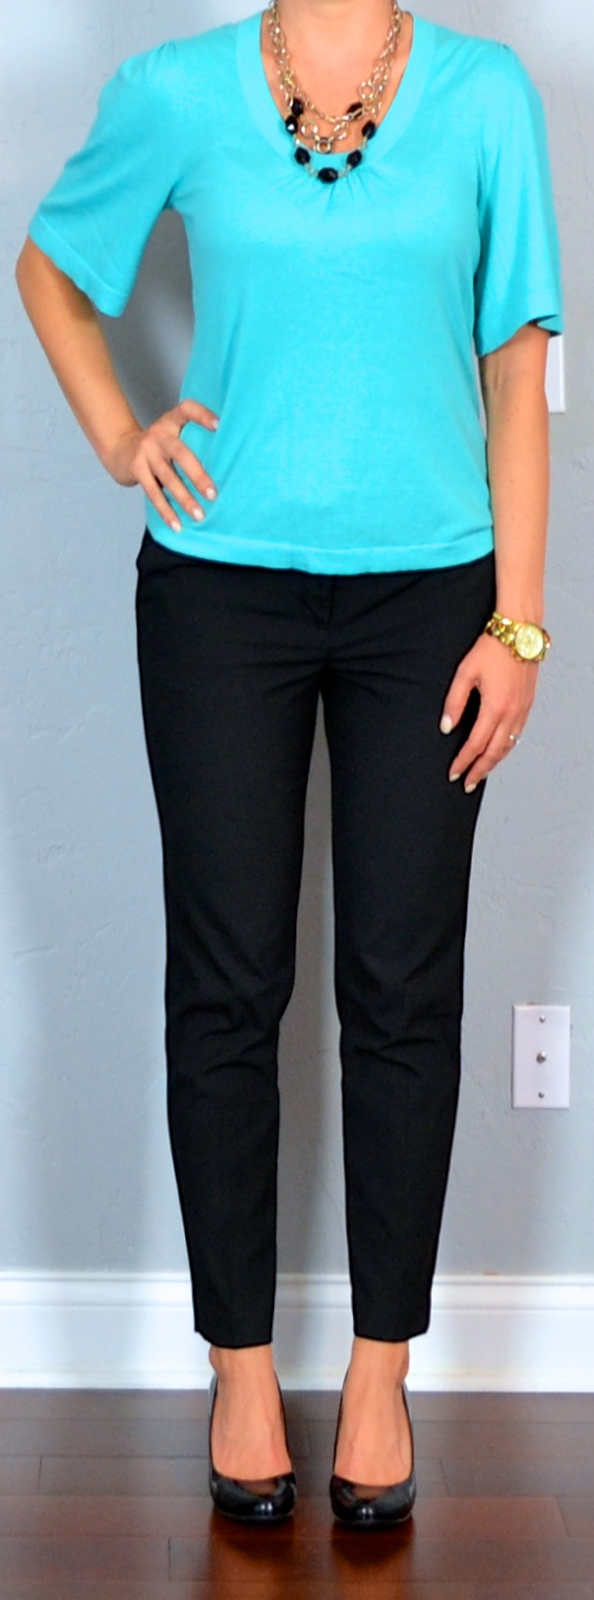 e55b1-tealblackcropped